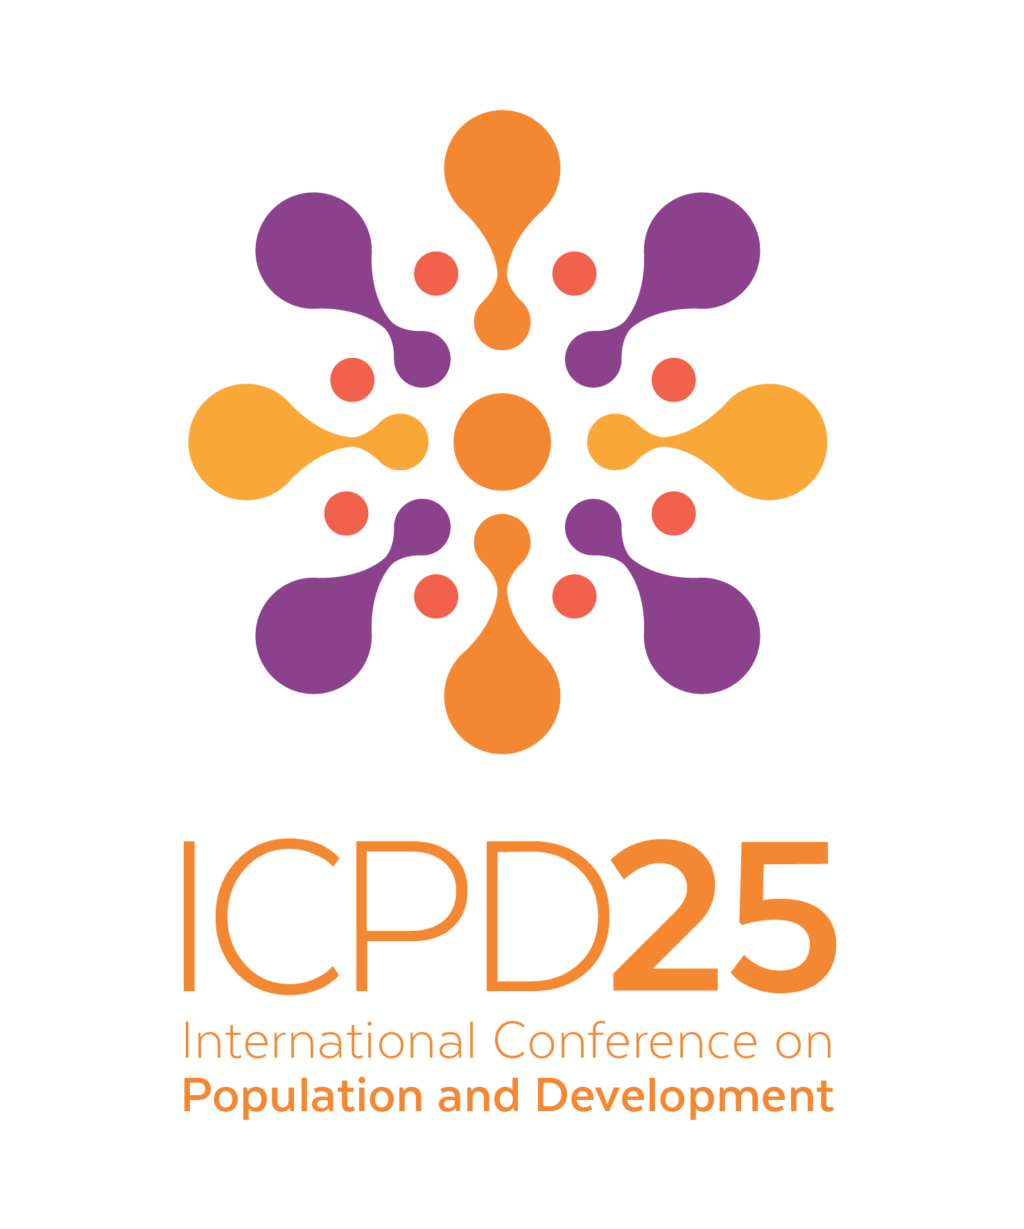 Private sector partners commit billions to help advance ICPD agenda